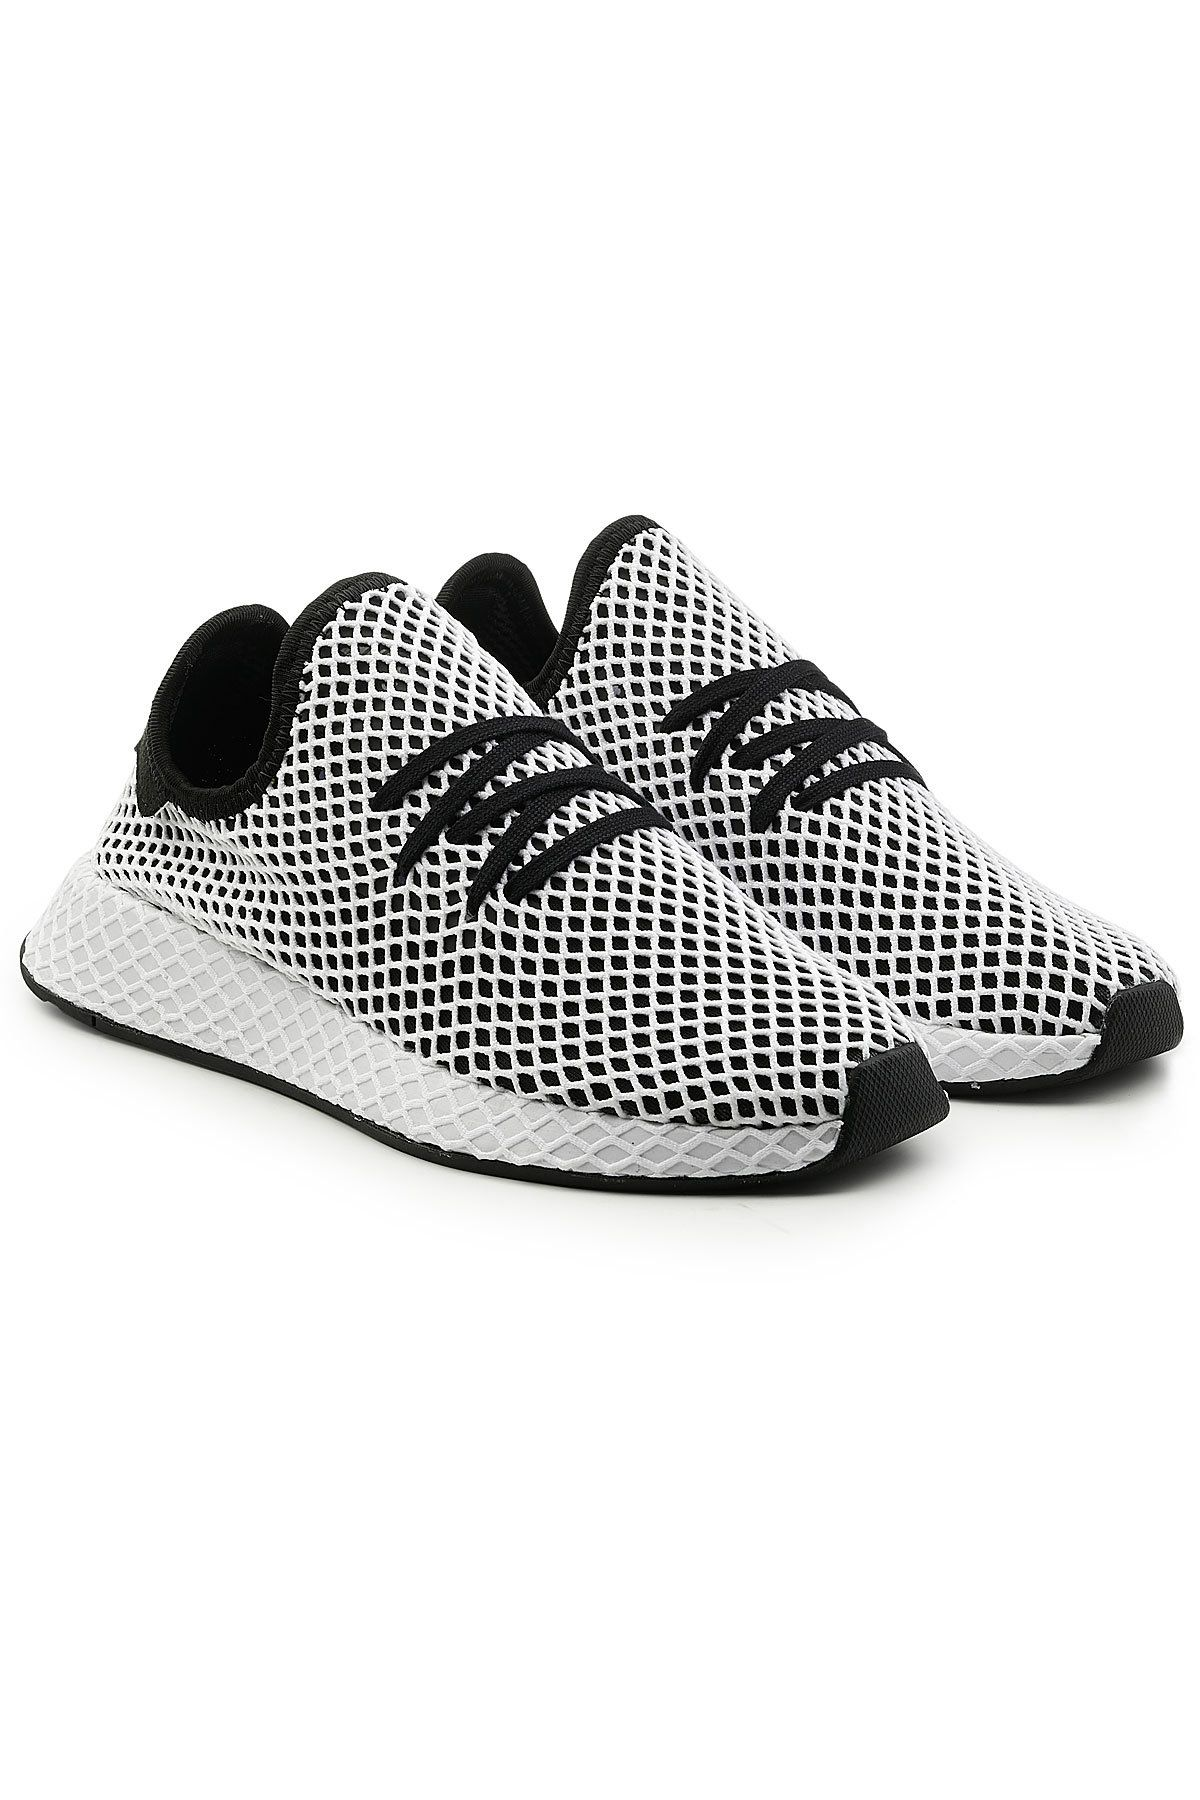 af6c09fe5 ADIDAS ORIGINALS DEERUPT RUNNER SNEAKERS.  adidasoriginals  shoes ...